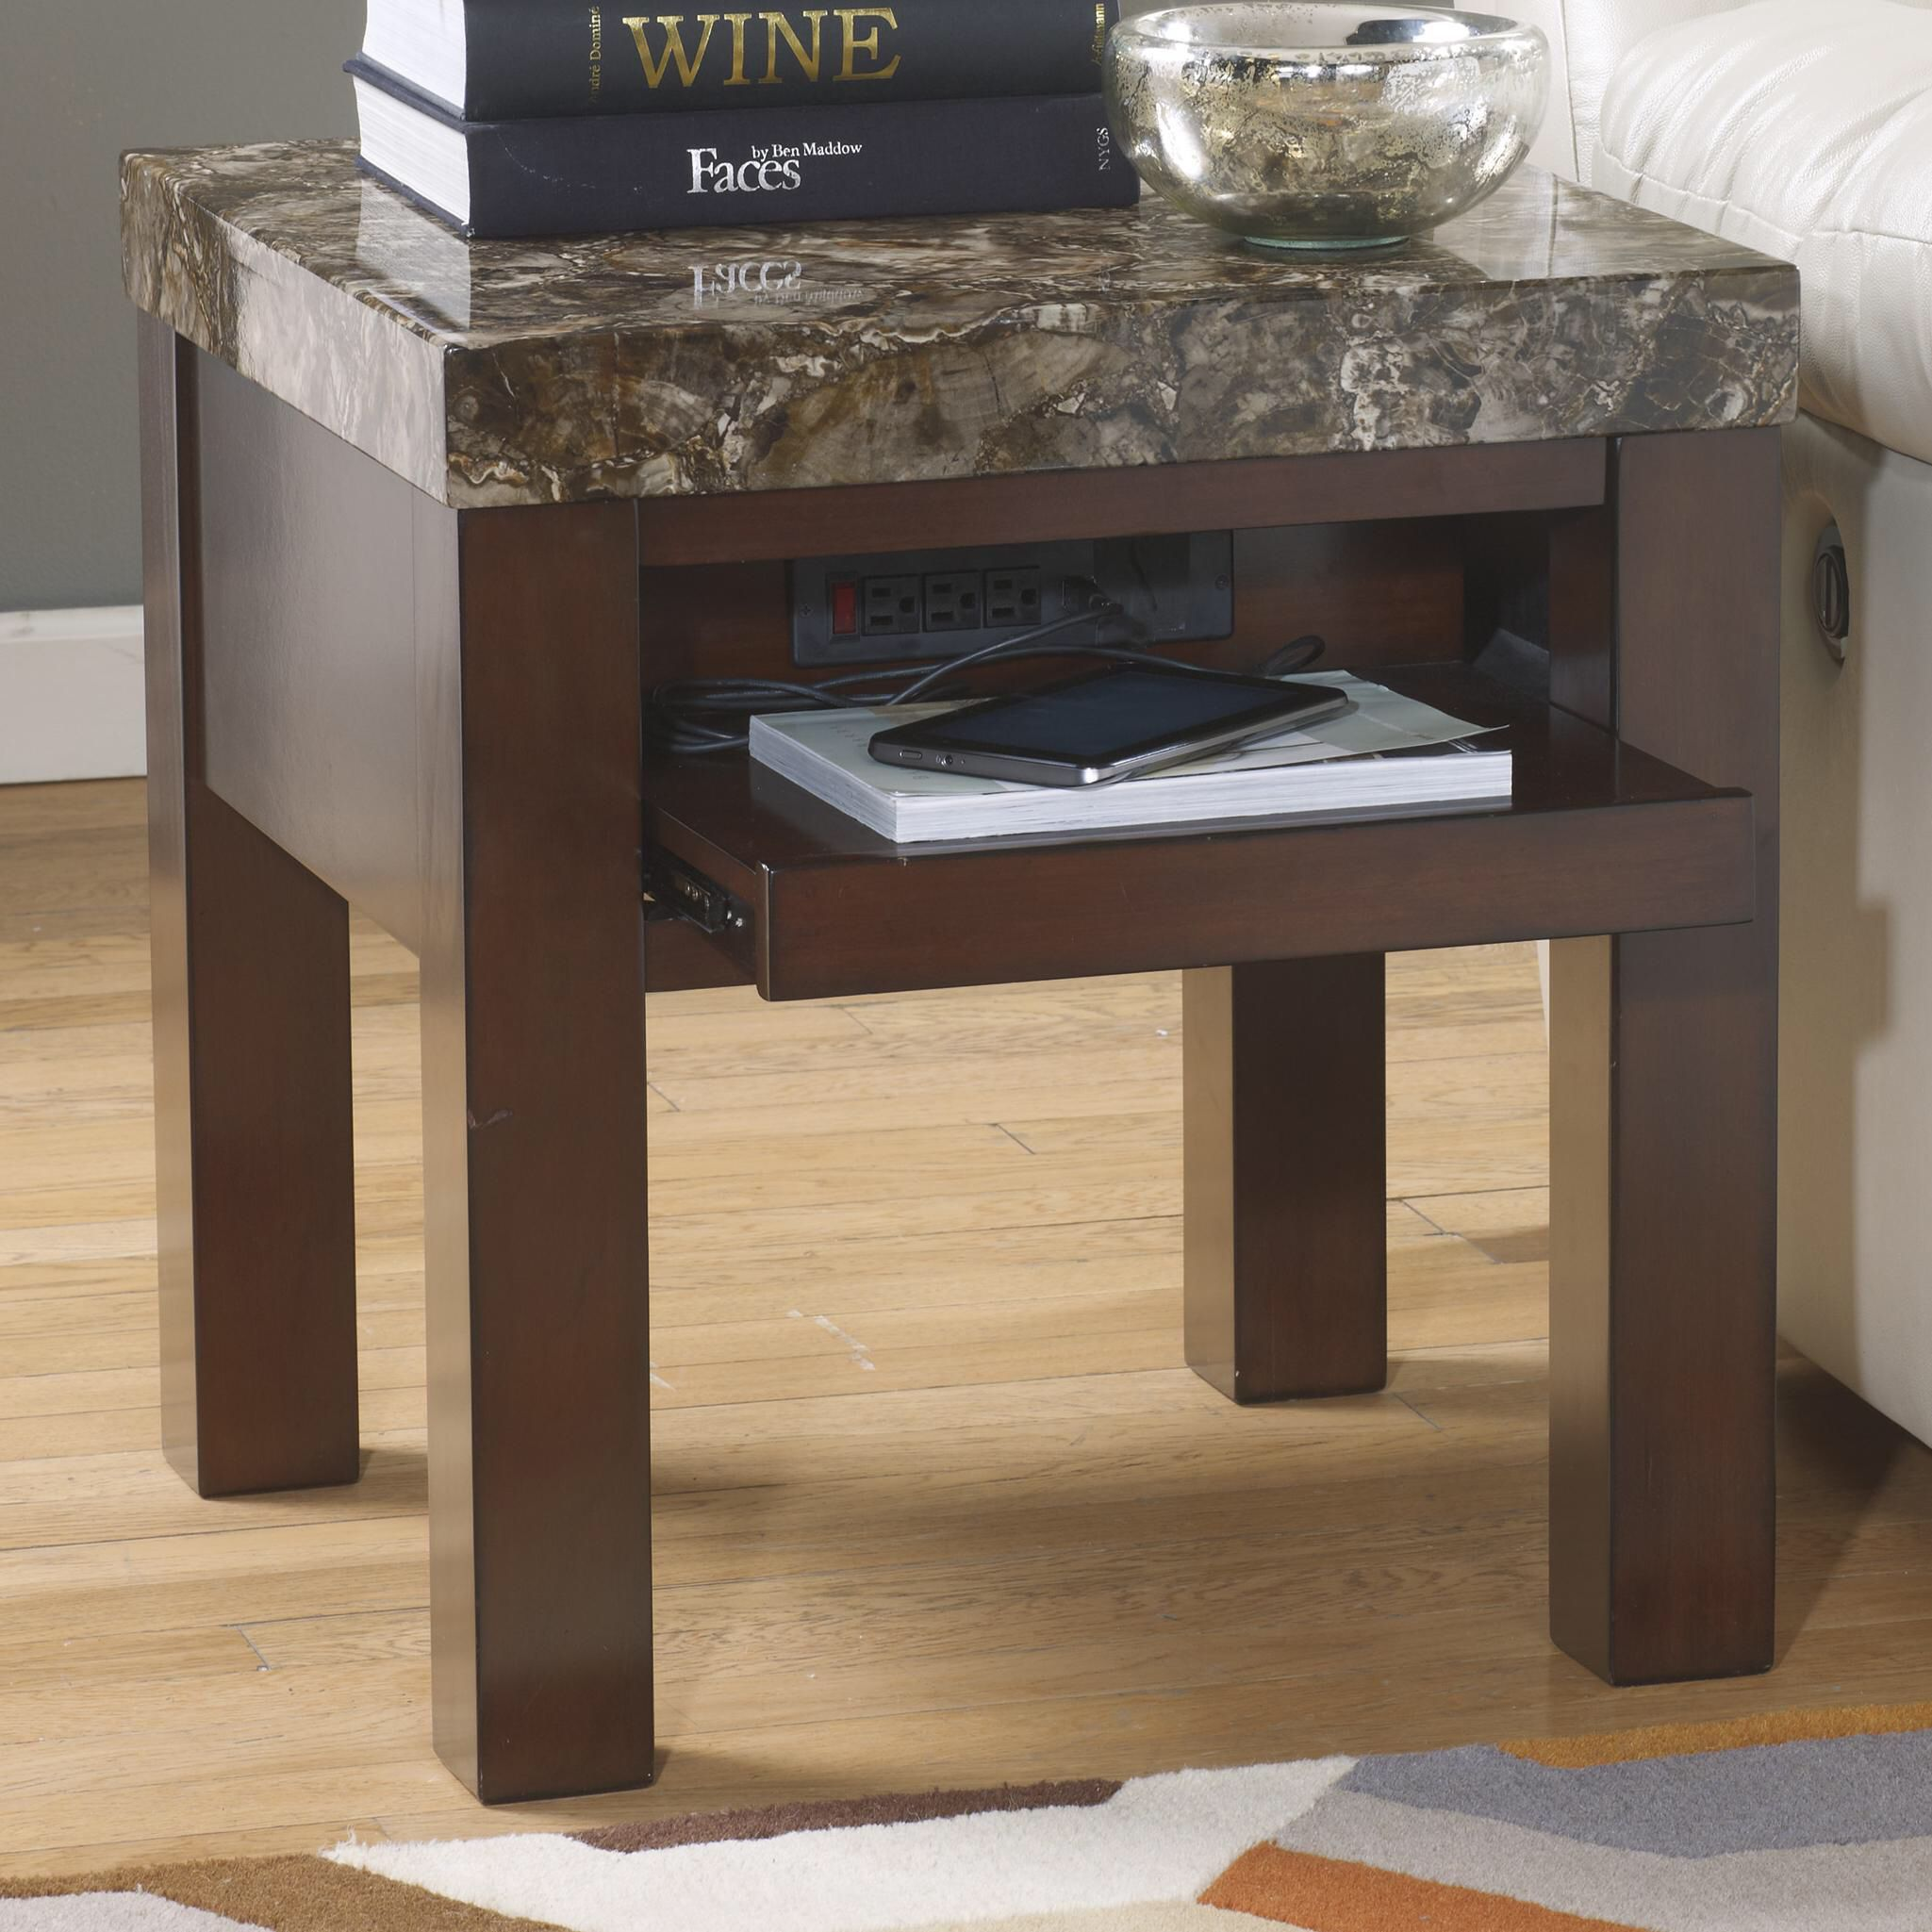 end table with charging station and sliding compartment home accent tables oak coffee plans modern mats round cloth vanity goods champagne mirrored furniture for tiny spaces extra